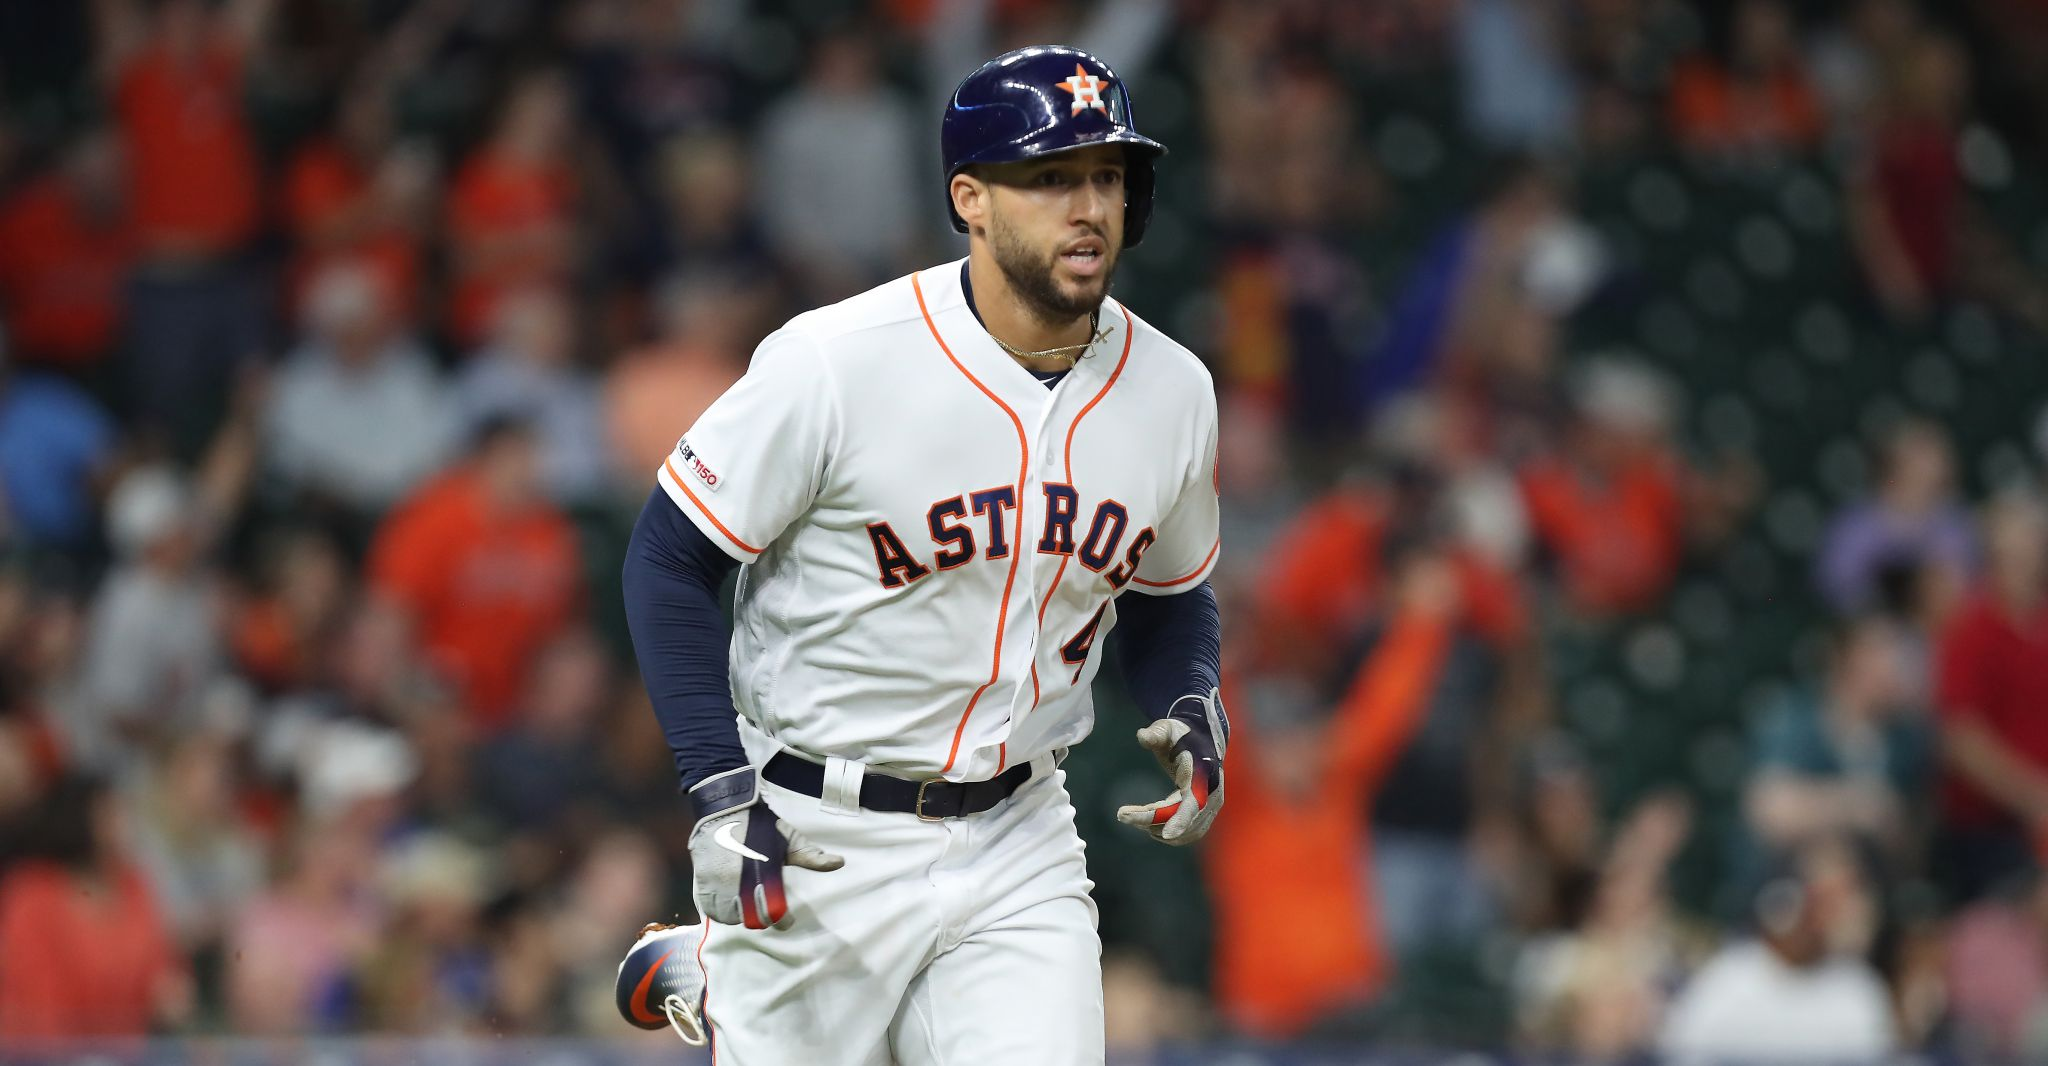 George Springer's return to Astros' lineup may be imminent